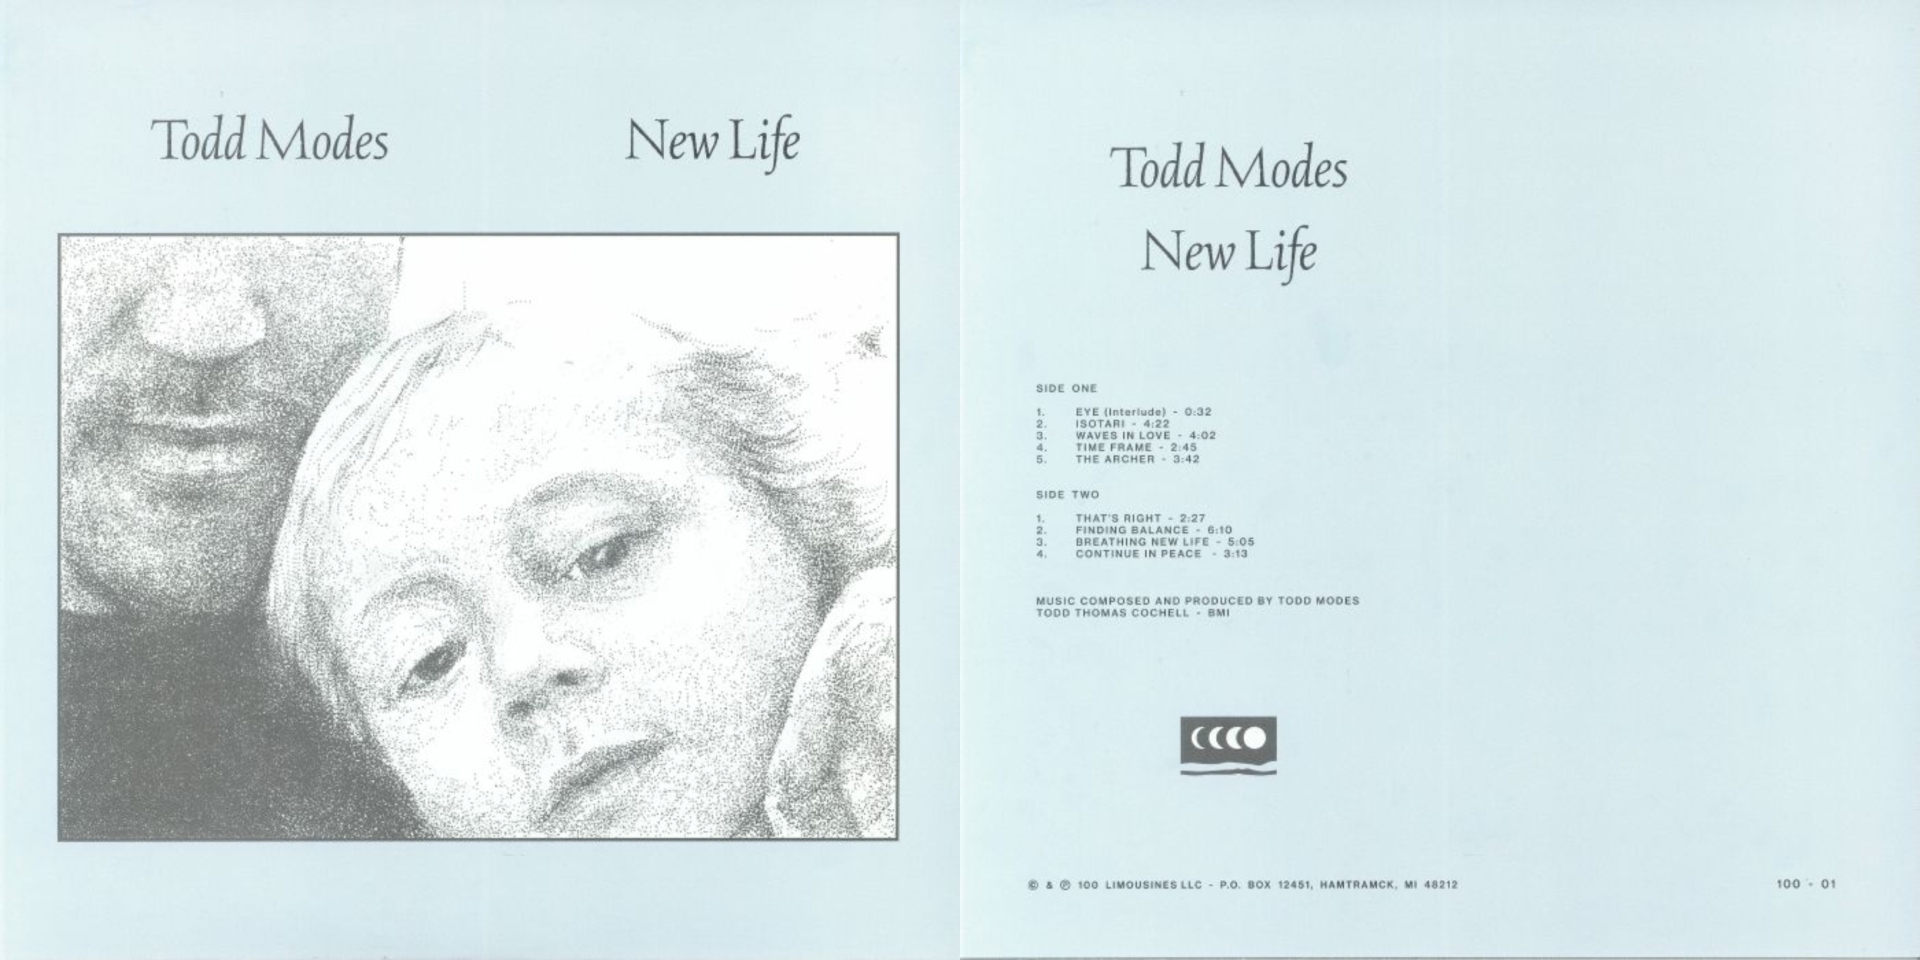 Todd Modes (Detroit DJ releasing music on Going Good, FIT Sound, Golf Channel, M1 Sessions) New Life is a deeply personal meditation on the cycles of life and time.